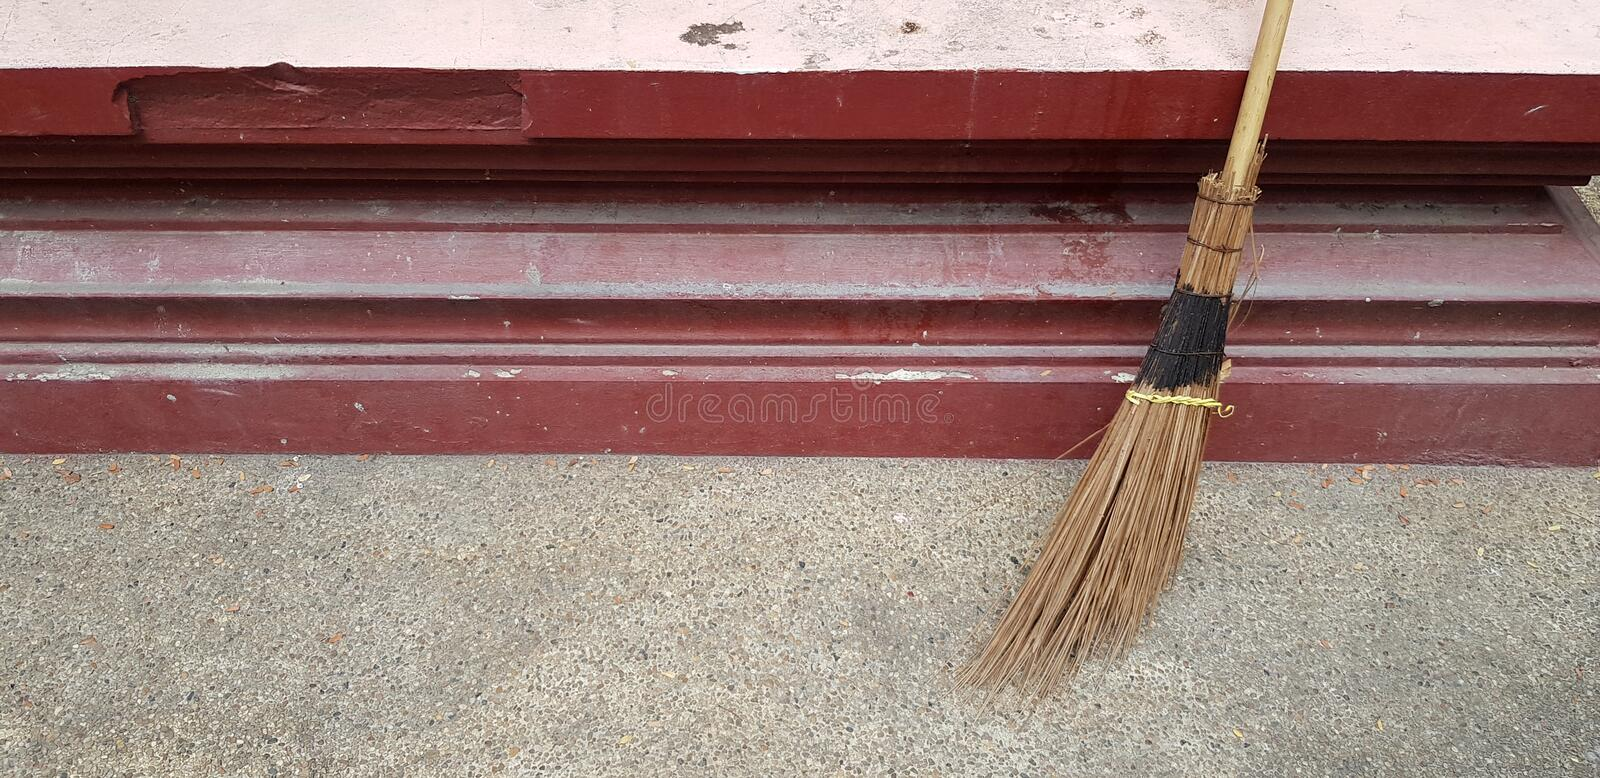 Broom Against the red wall for clean dust and sweep the garbage. With left copy space - Cleaning tool and Housework concept stock photos